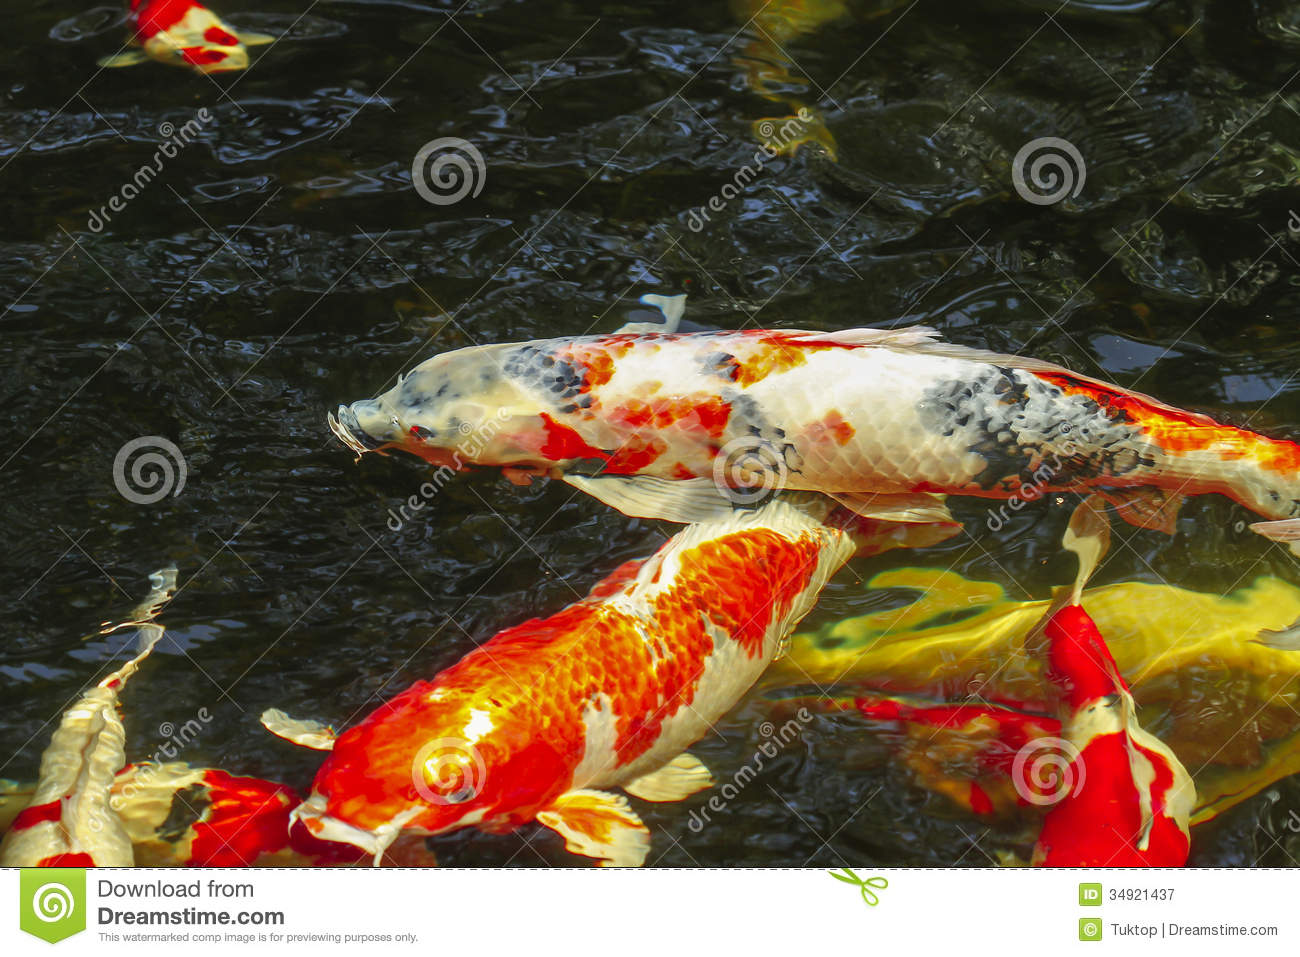 Kois carp in a pond royalty free stock photography image for Carp pond design